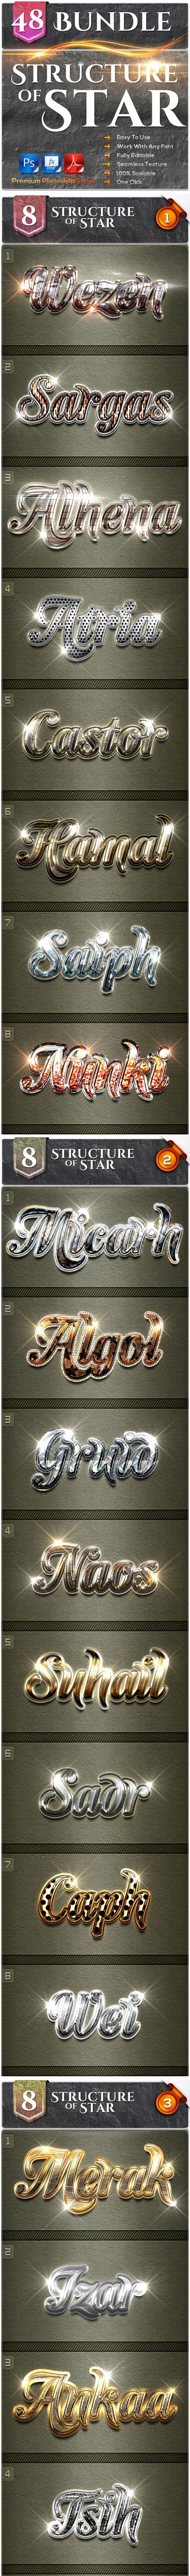 48 Structure of Stars Bundle - Text Effects Styles